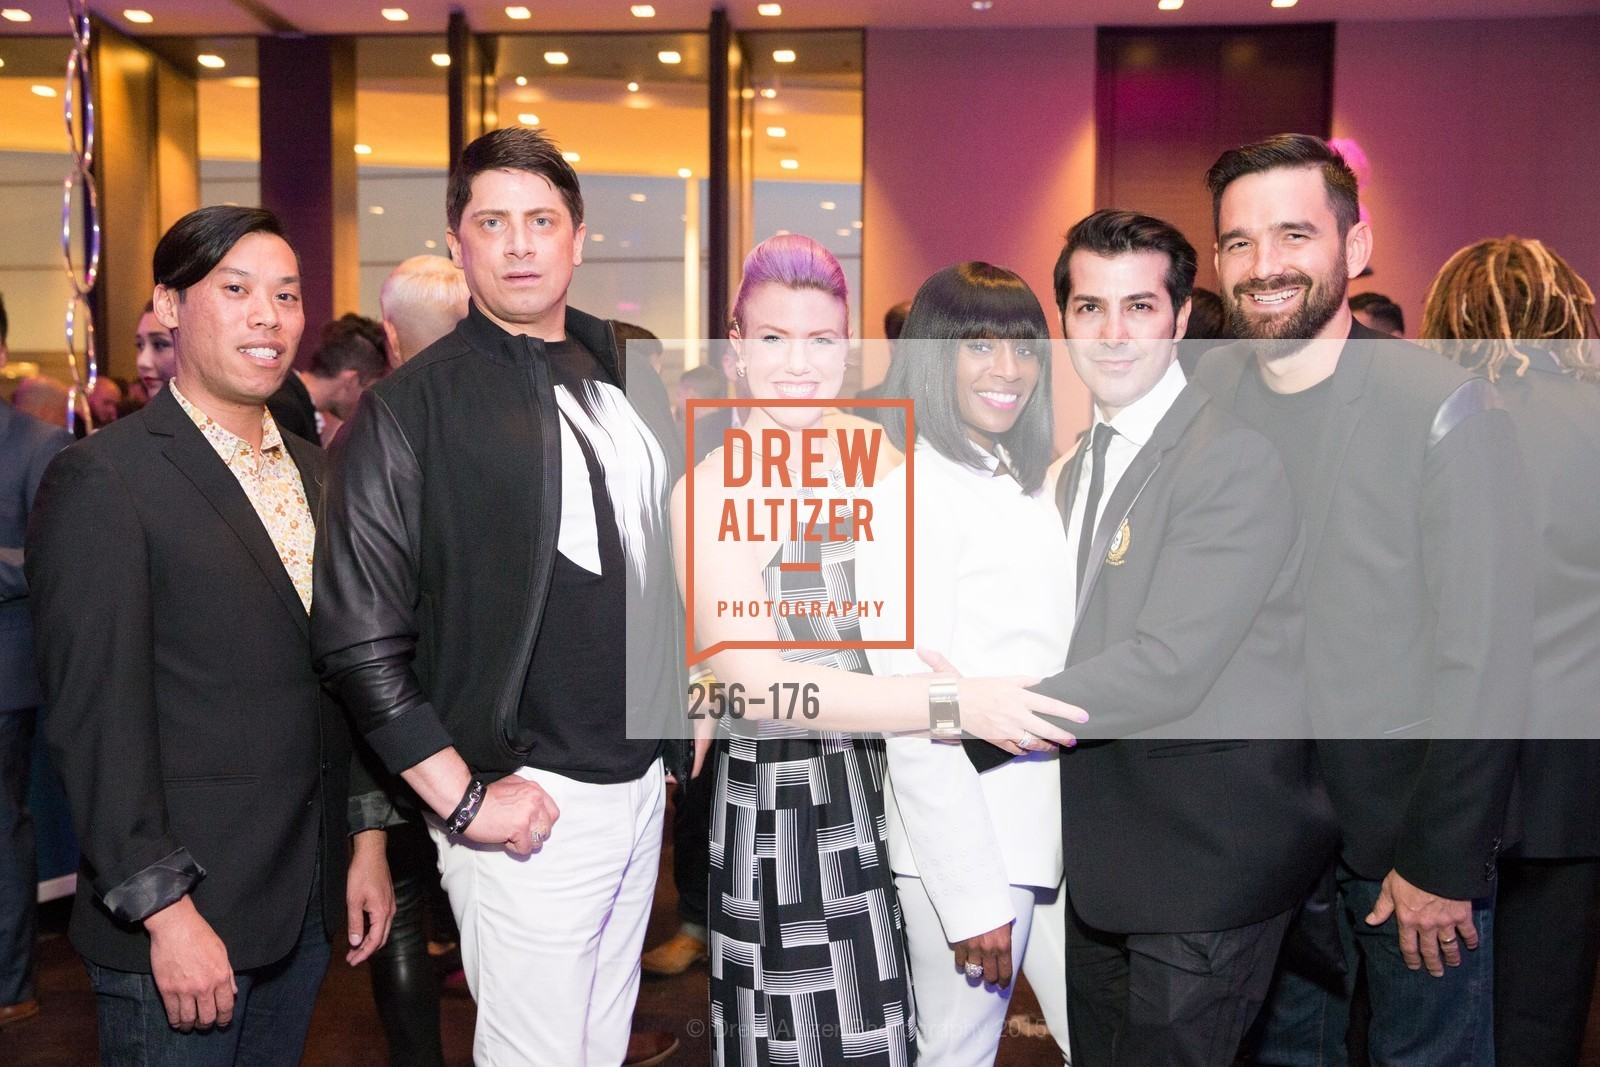 Alvin Ma, Aubrey Brewster, Pernella Sommerville, Bacca Da Silva, Ben Julian, VIP Pride Celebration 2015, St. Regis, June 18th, 2015,Drew Altizer, Drew Altizer Photography, full-service event agency, private events, San Francisco photographer, photographer California